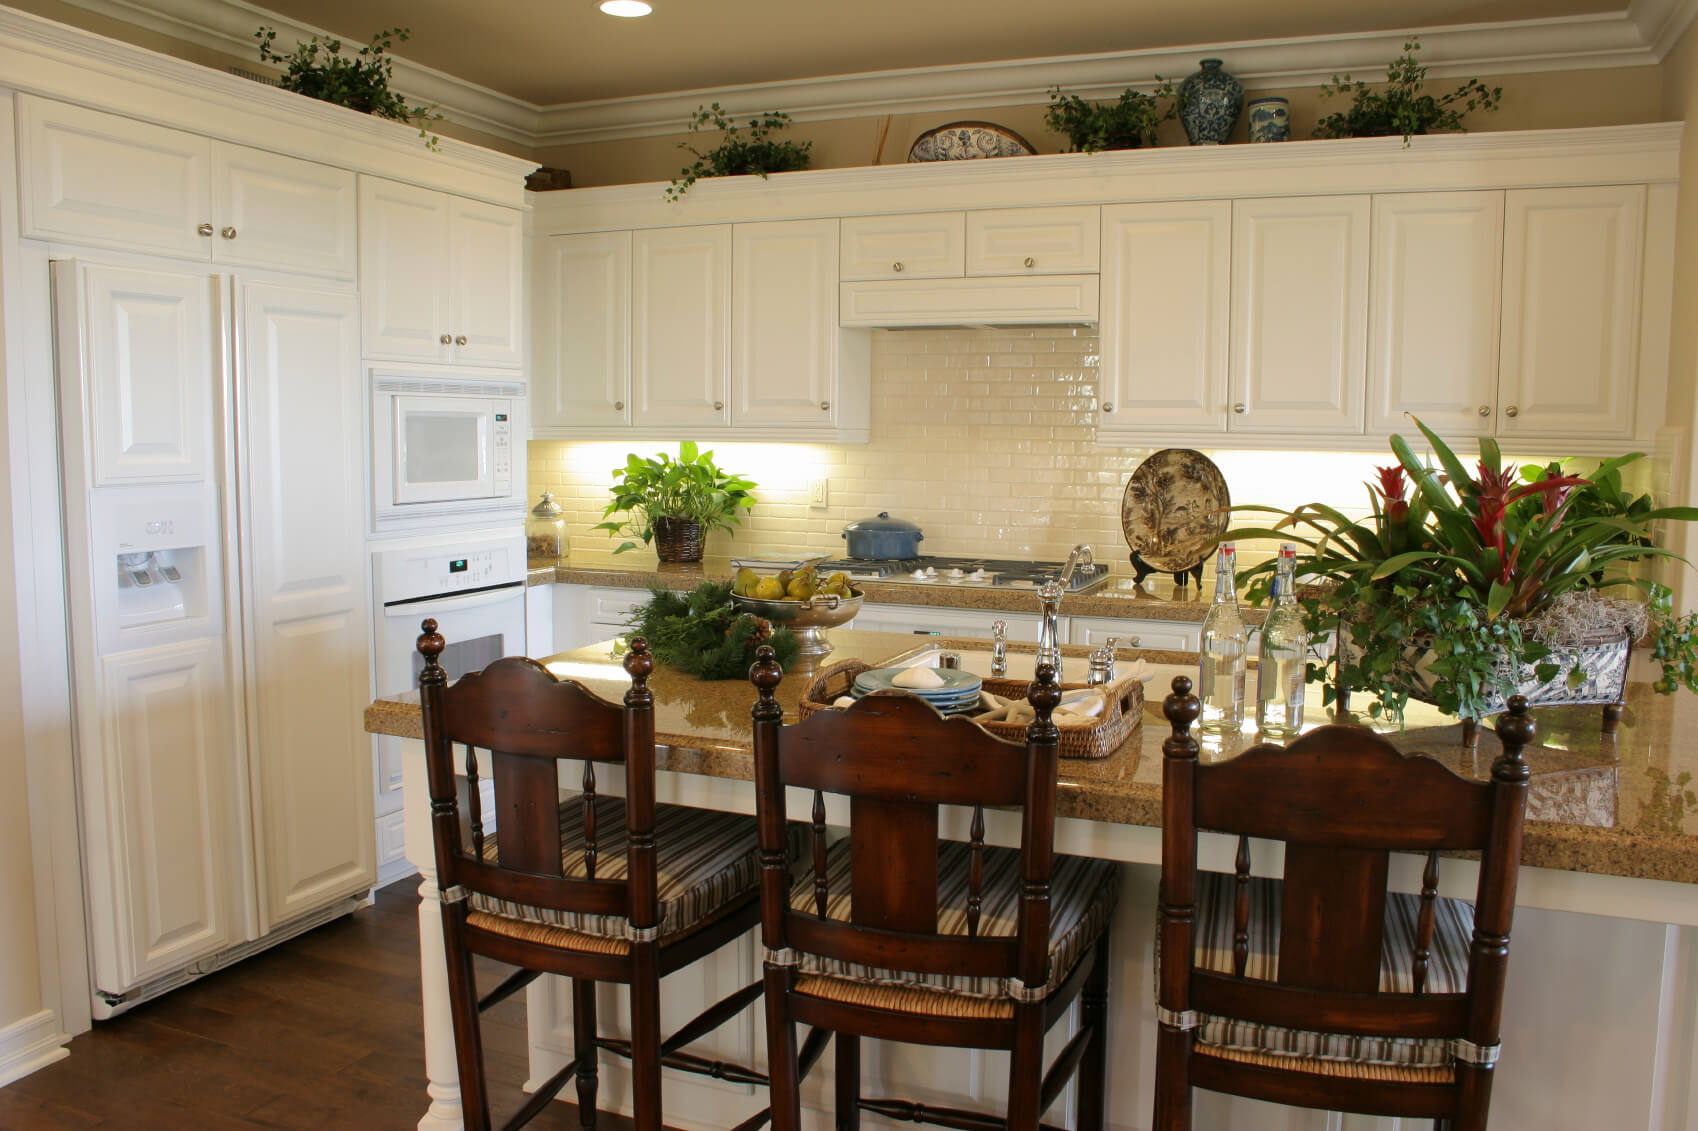 white kitchen designs pictures kitchen cabinet countertop White matte cabinetry paired with glossy white brick backsplash over brown marble countertops pulls this kitchen